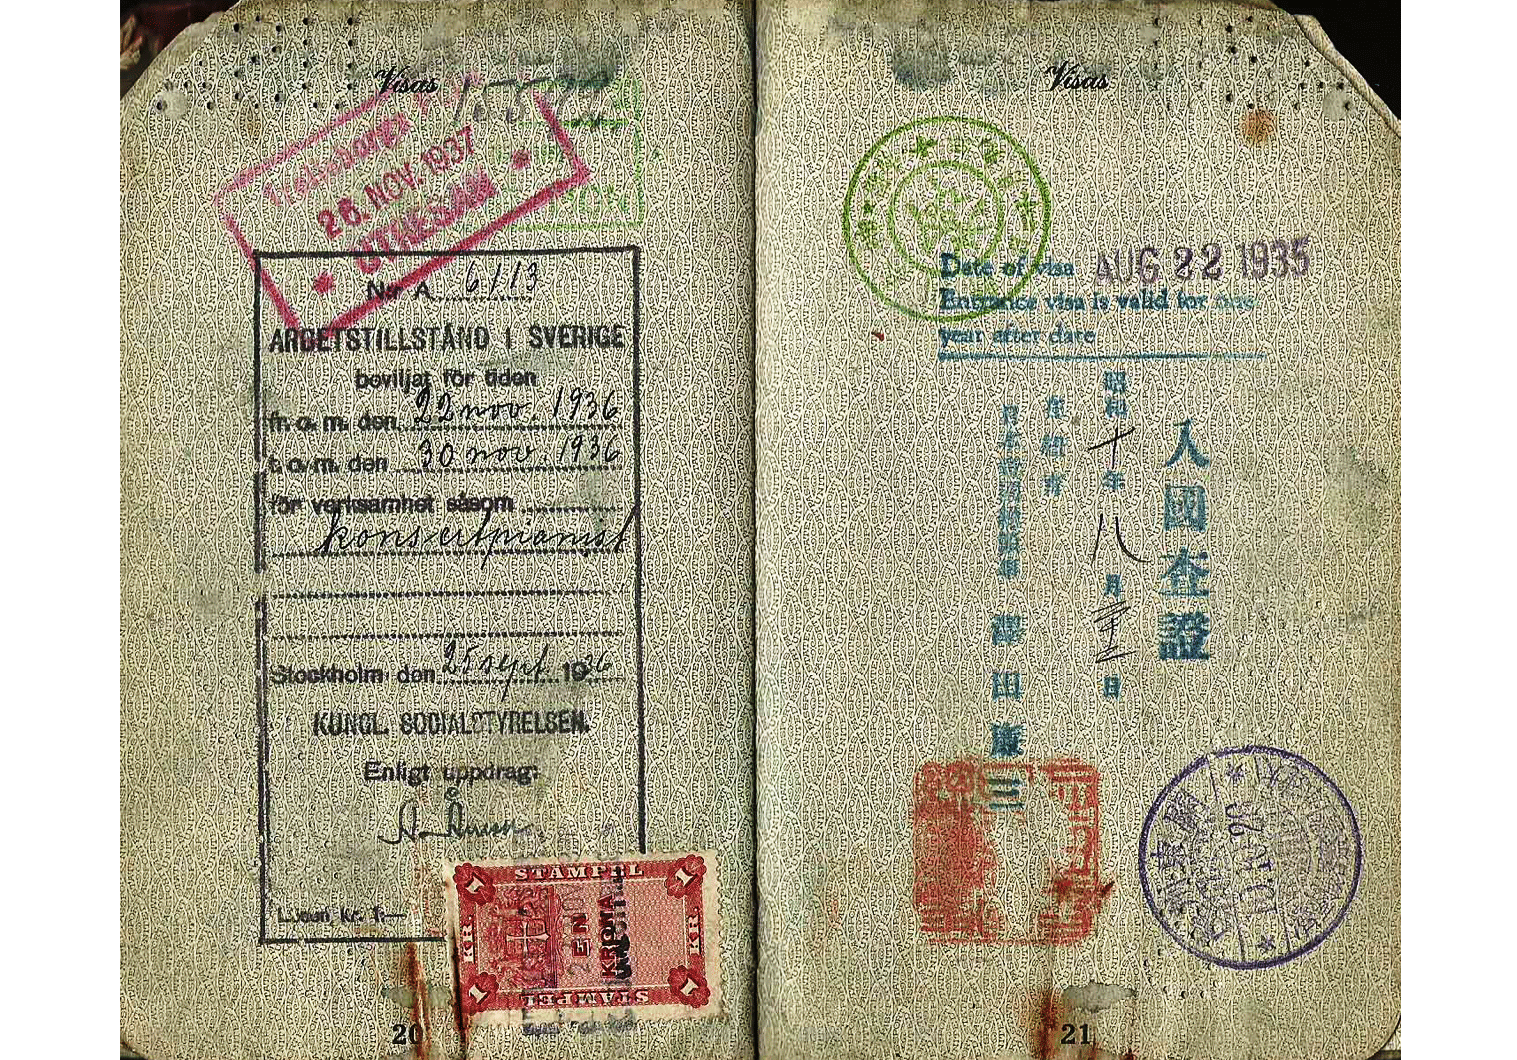 Shura Cherkassky 1934 US issued passport.